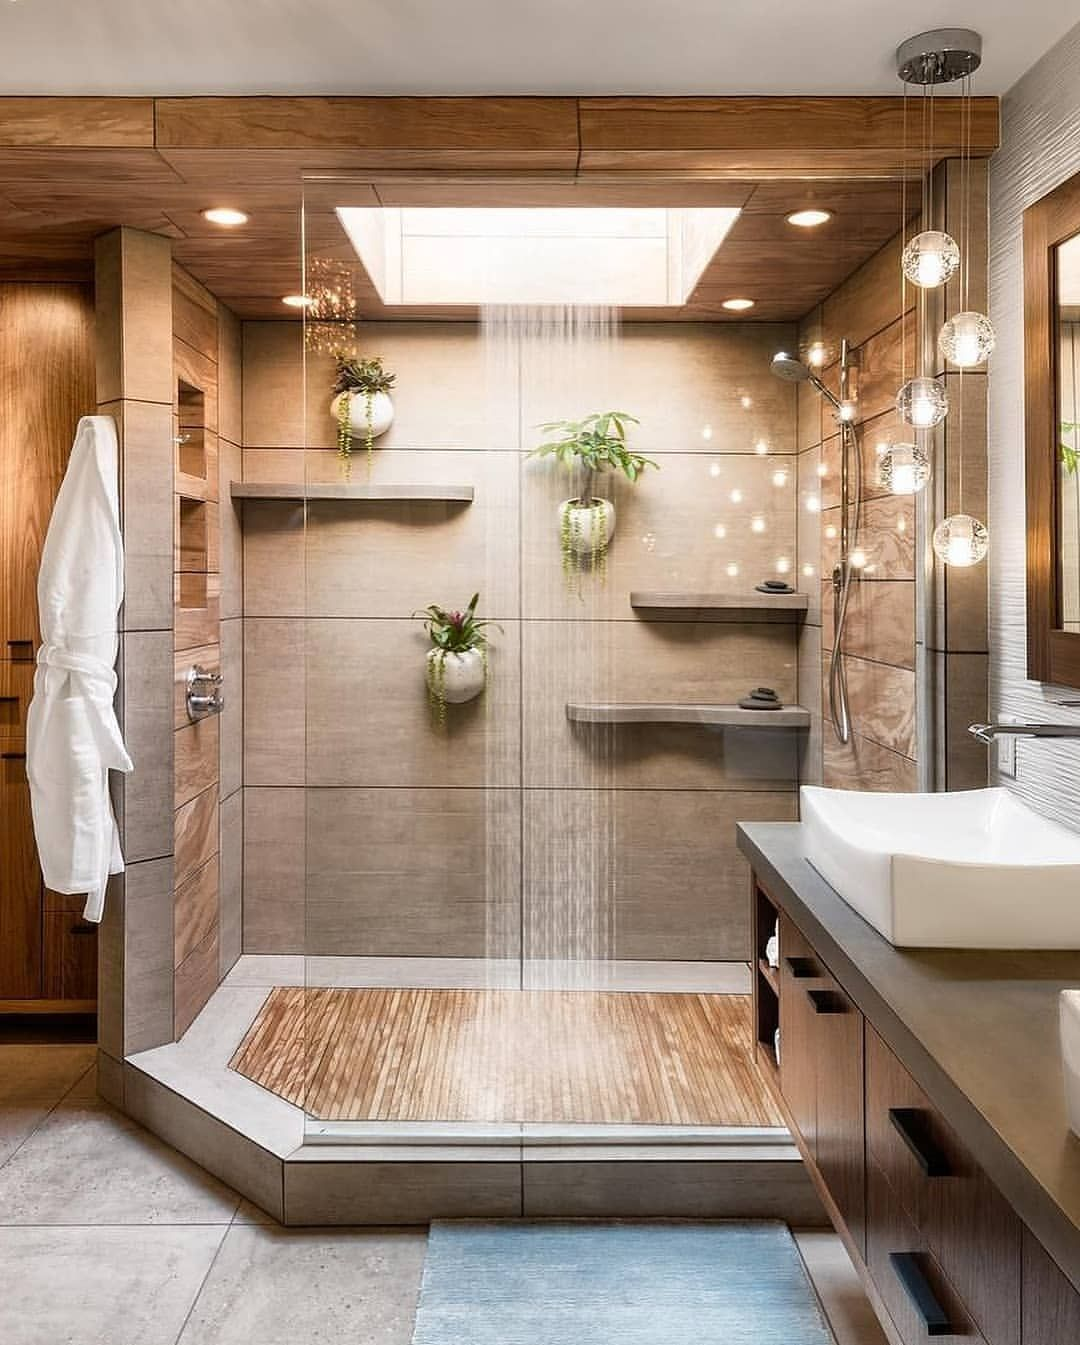 Now That S A Bathroom Transformation Love Love The Before And After Pictures Good Bathroom Shower Design Bathroom Interior Design Bathroom Remodel Designs